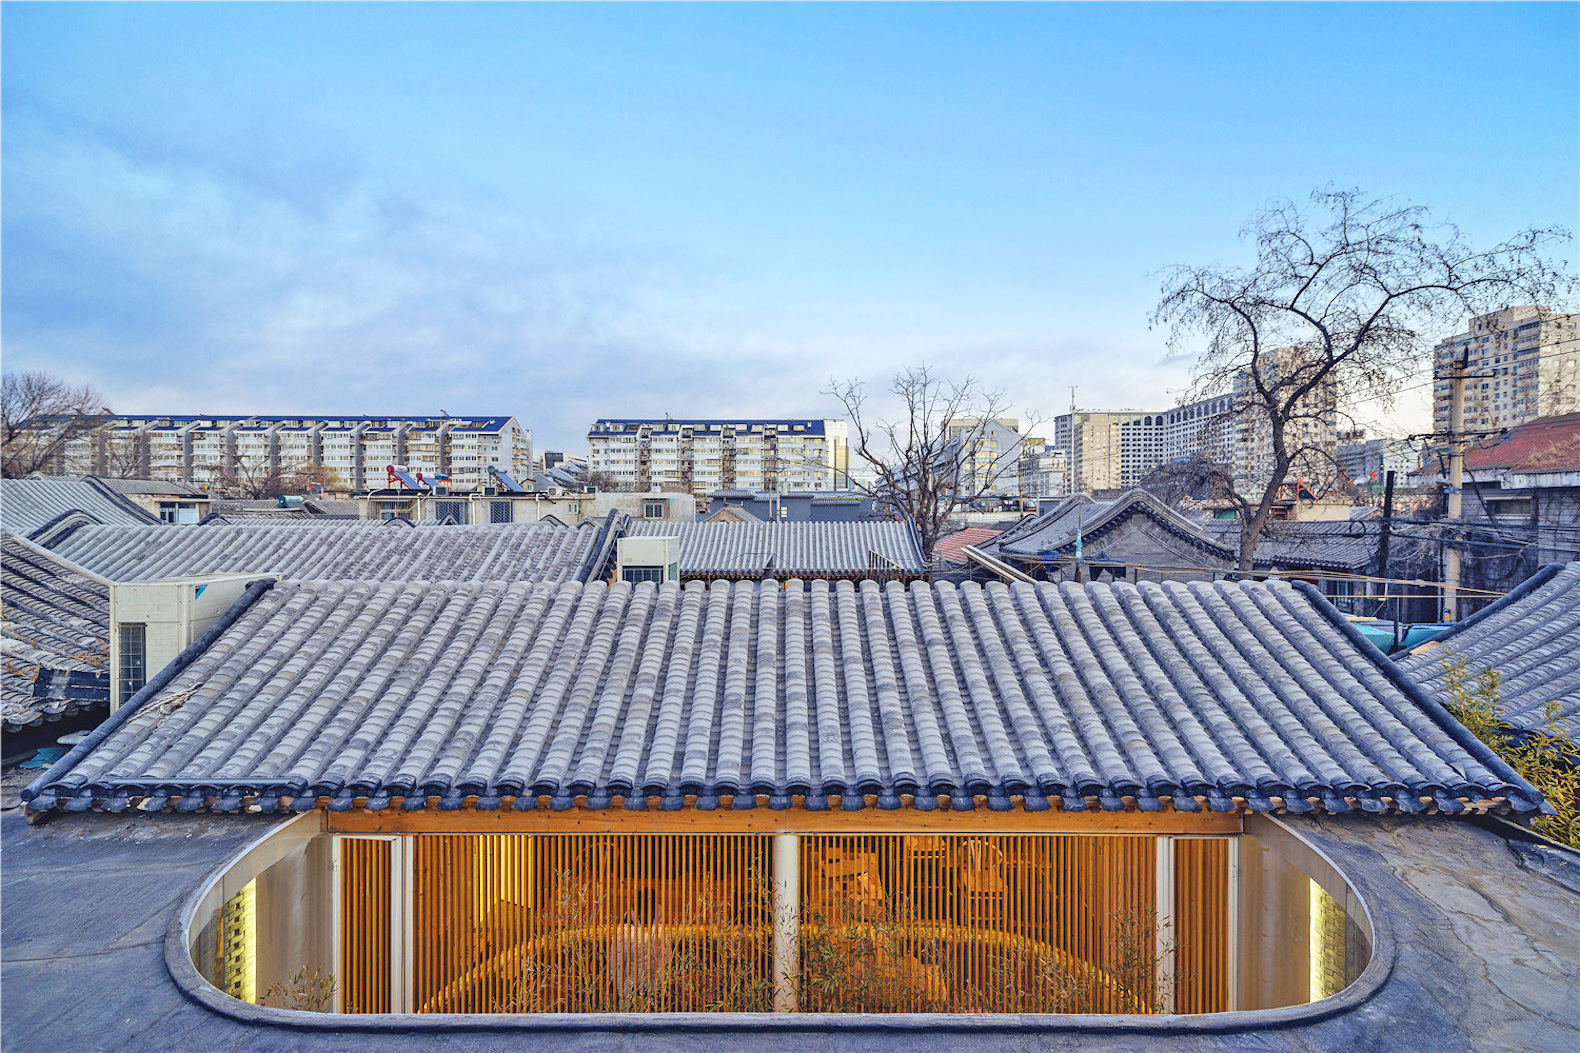 ARCHSTUDIO Inserts A Modern Teahouse Into An Ancient Chinese Structure